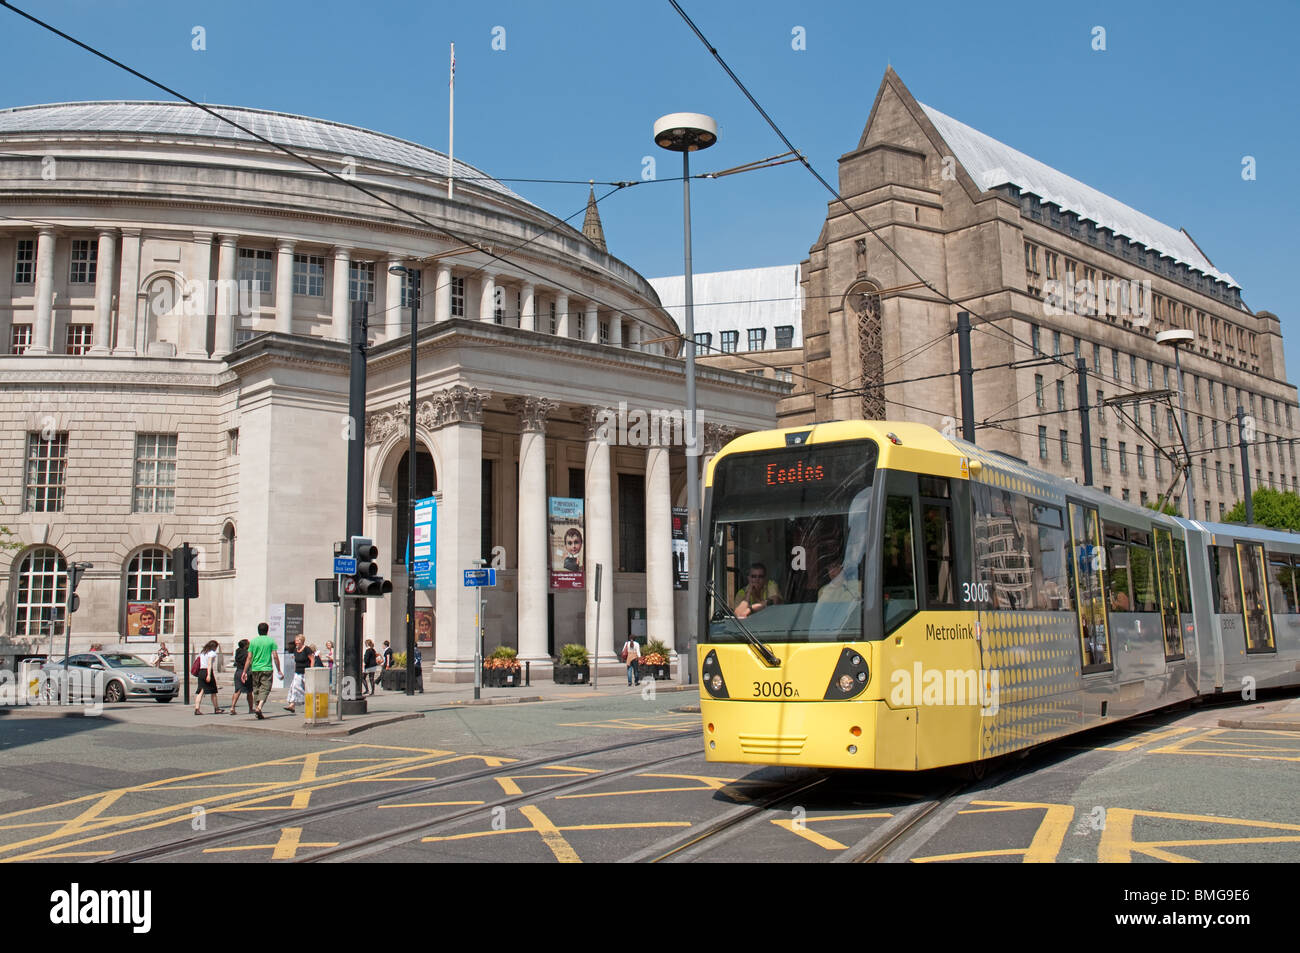 Tram in St Peters SquareManchesterCentral Library and the Town